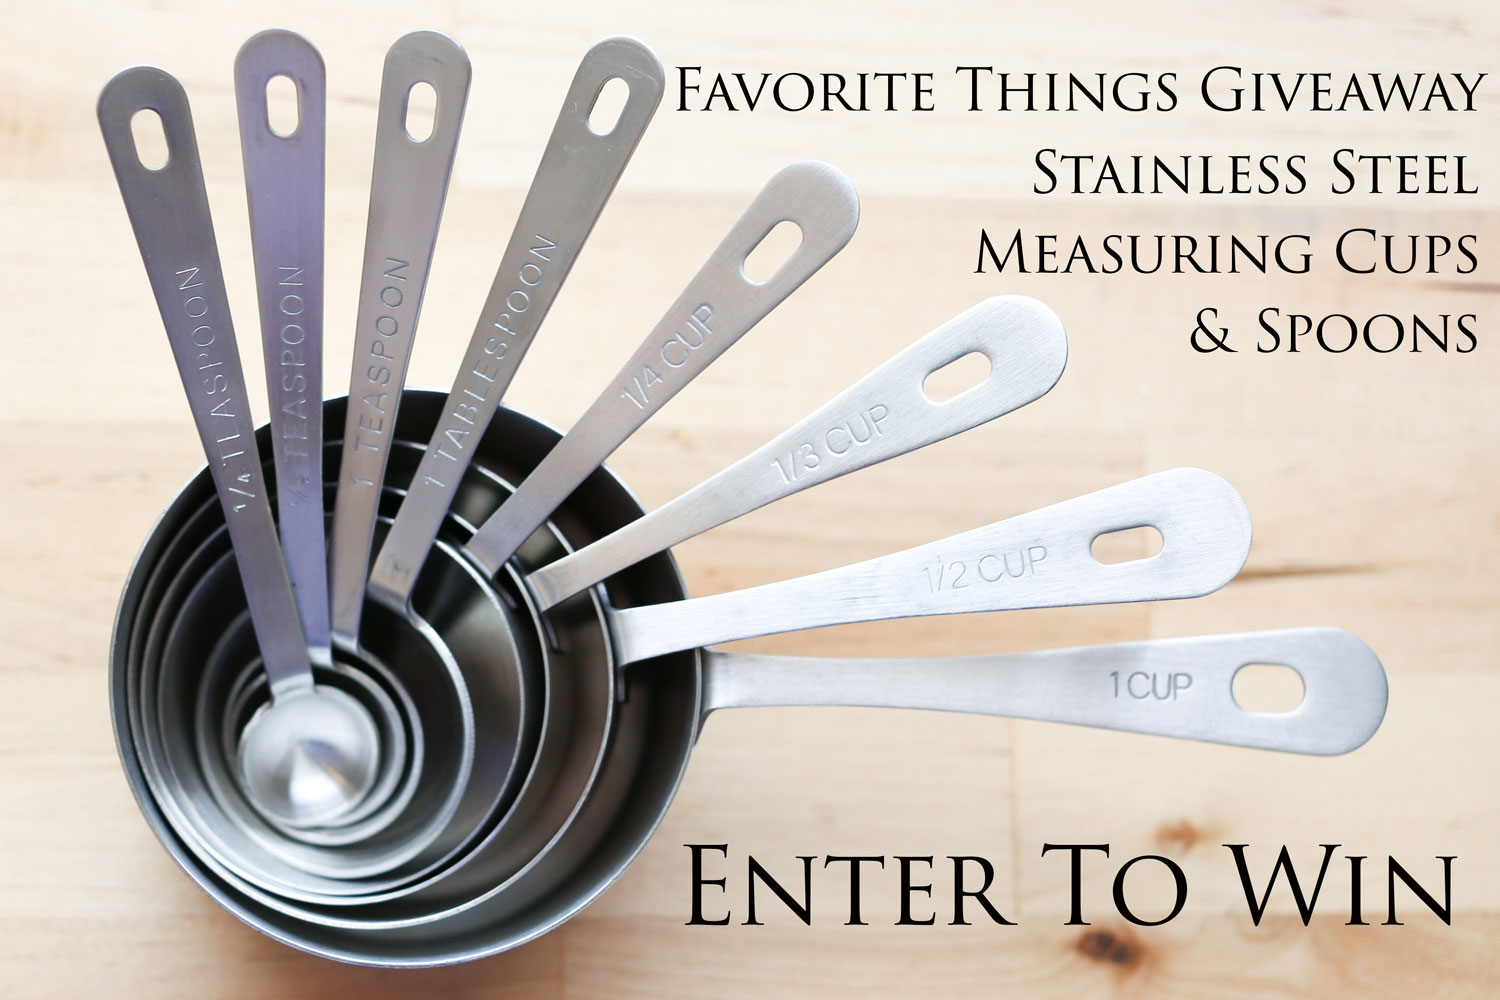 Enter to win an 8 Pieces Set of Stainless Steel Measuring Cups and Spoons!